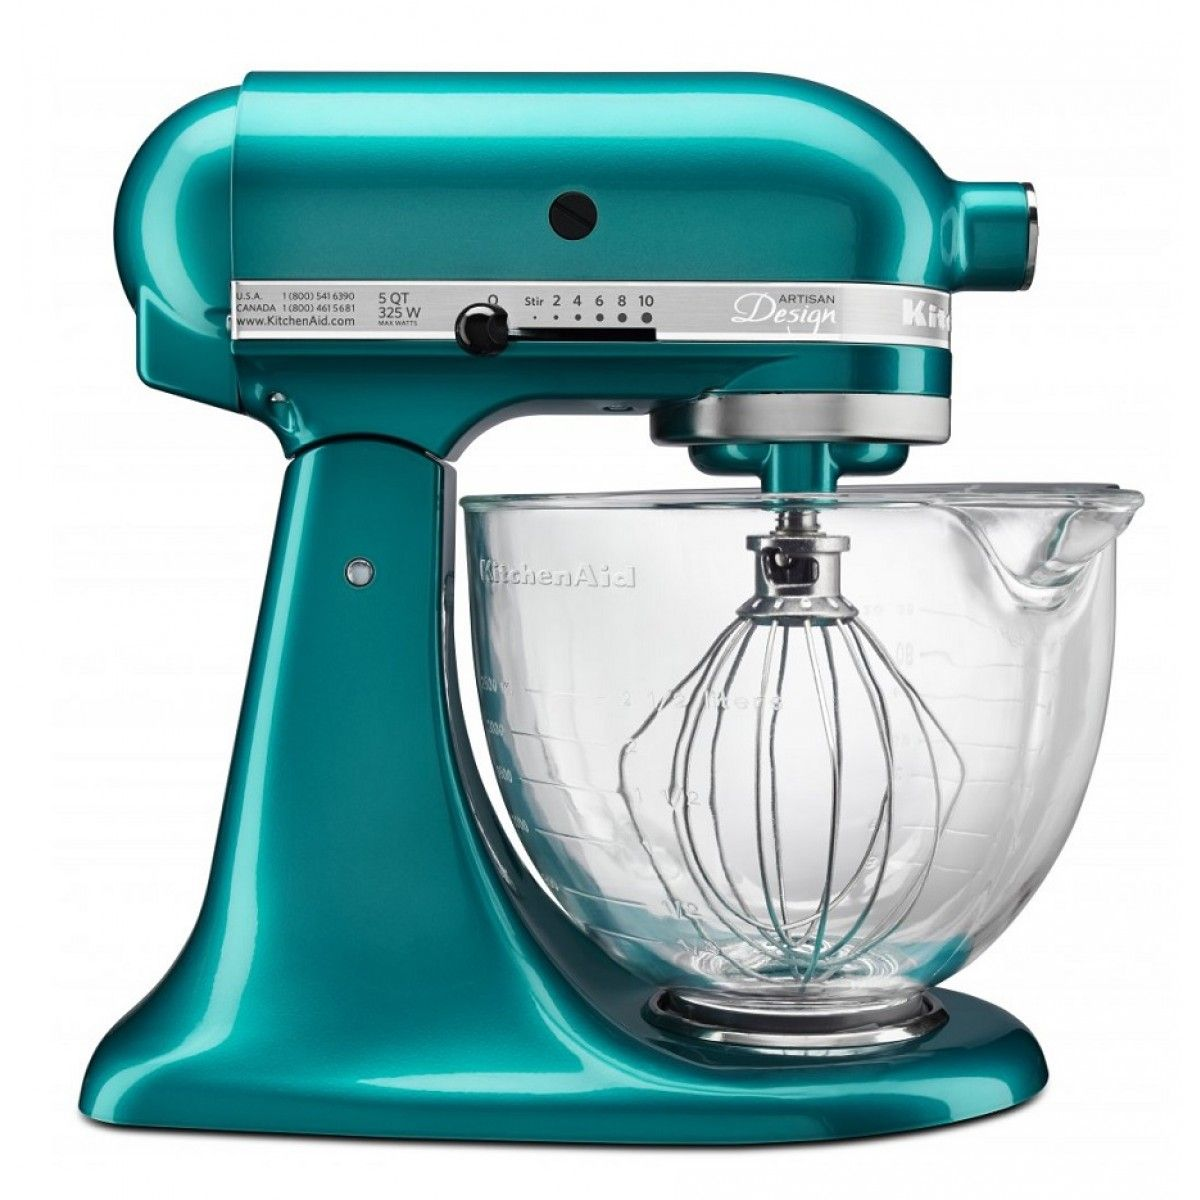 KitchenAid KSM155 Stand Mixer Sea Glass | Frozen Fortress ...